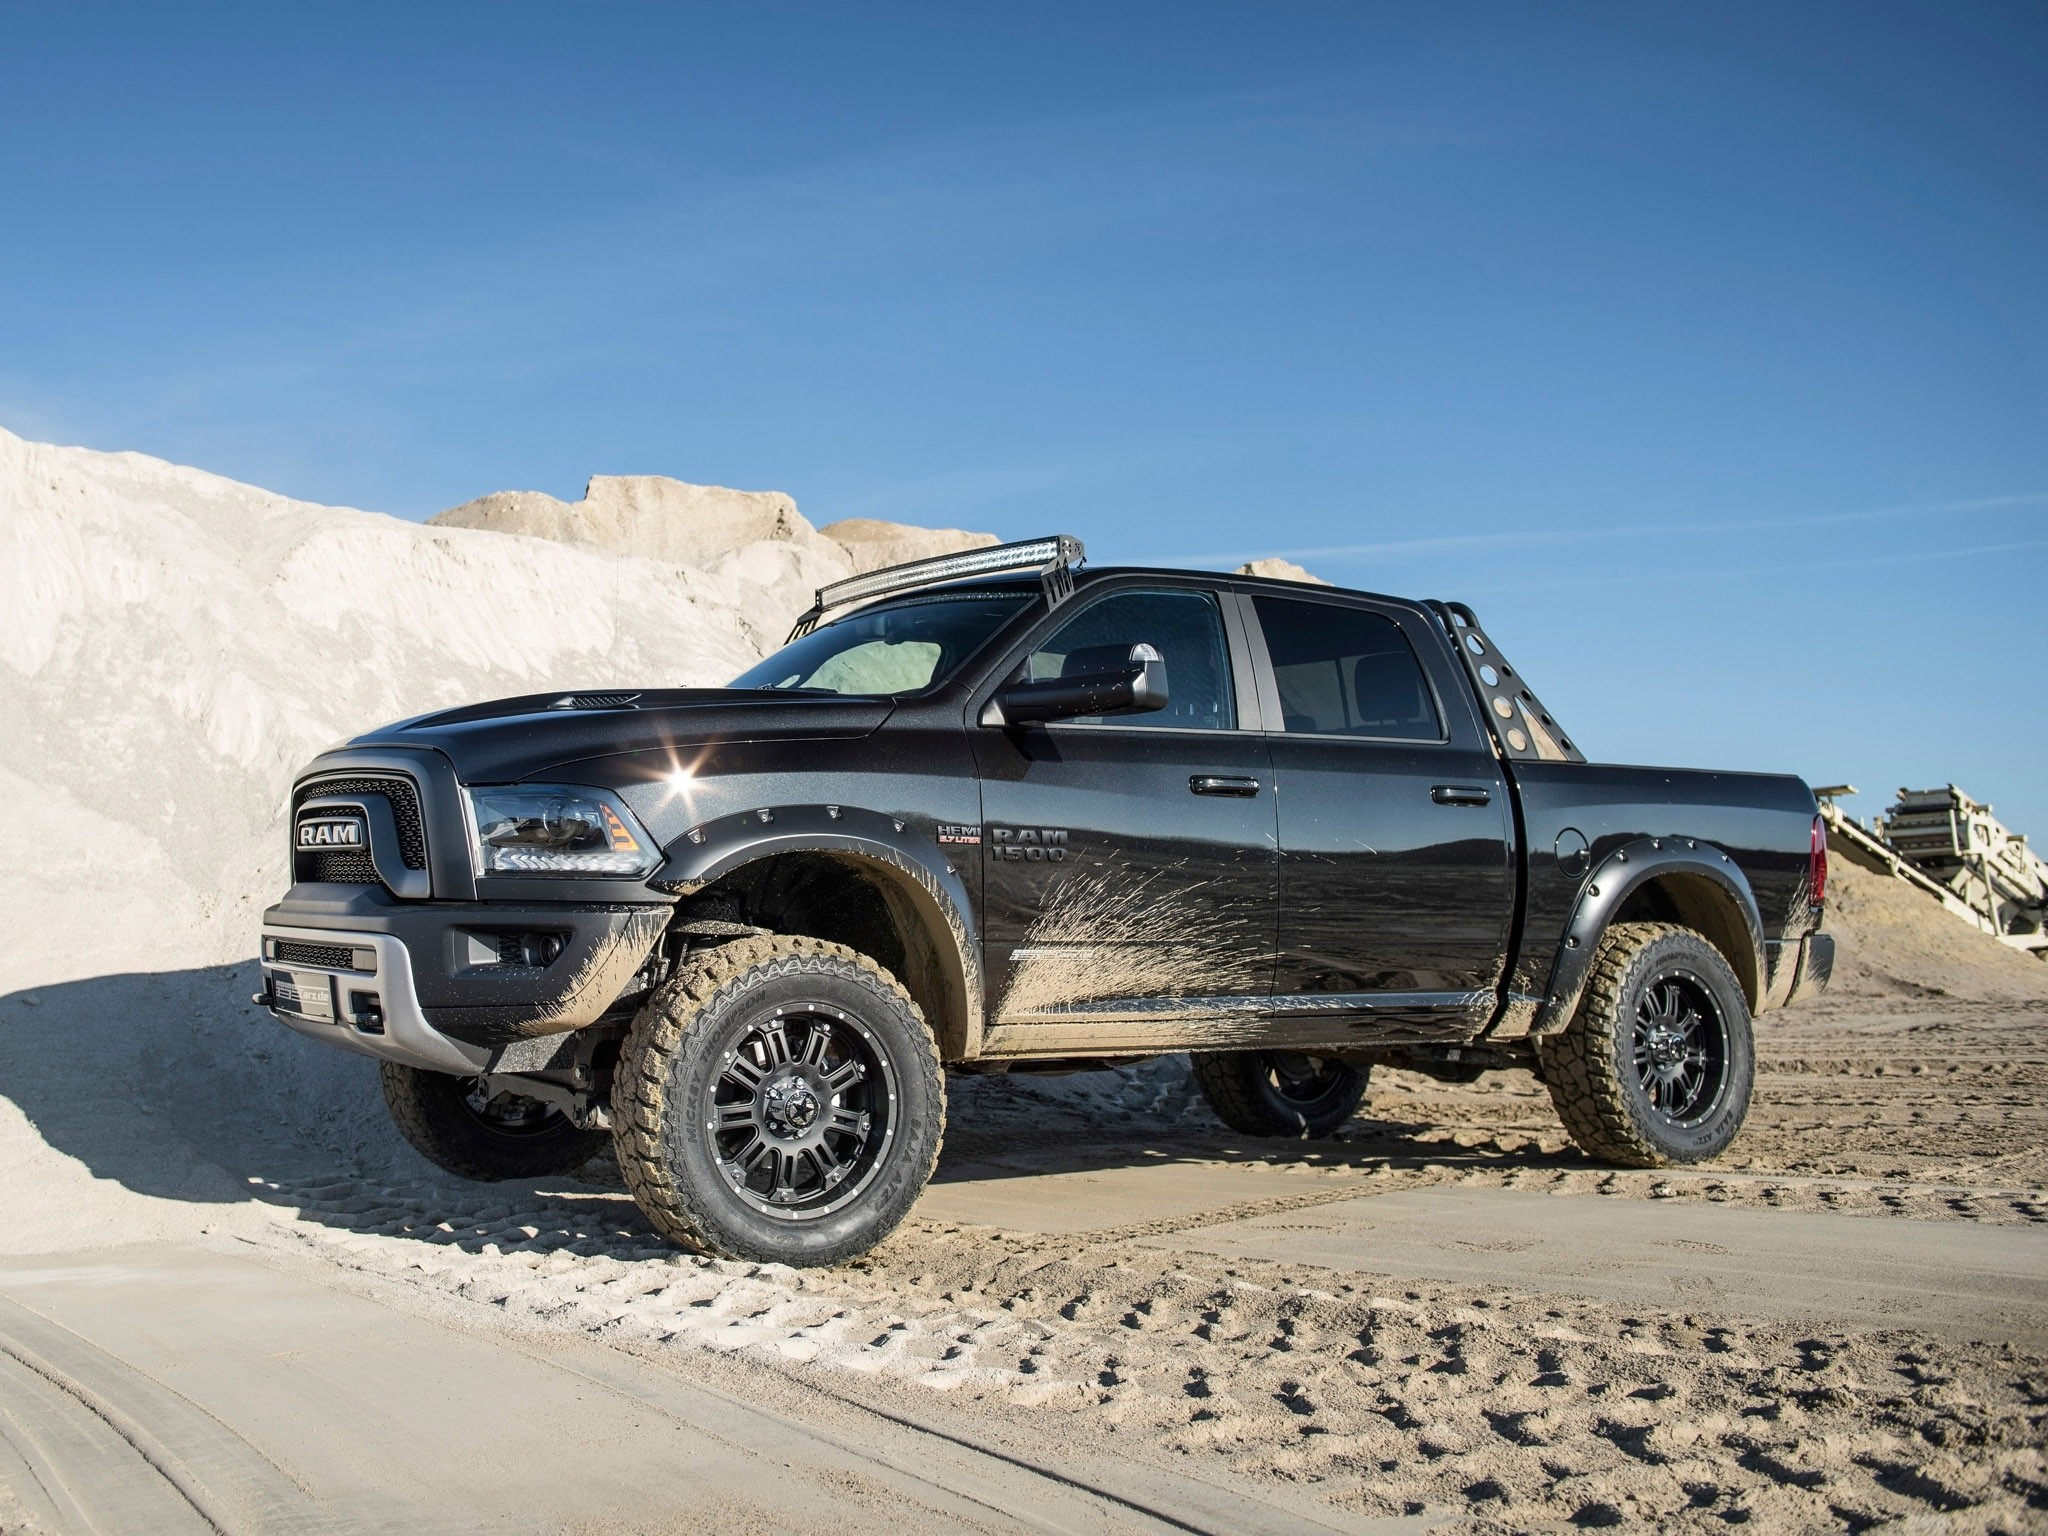 2016 Geigercars - Dodge Ram 1500 Rebel